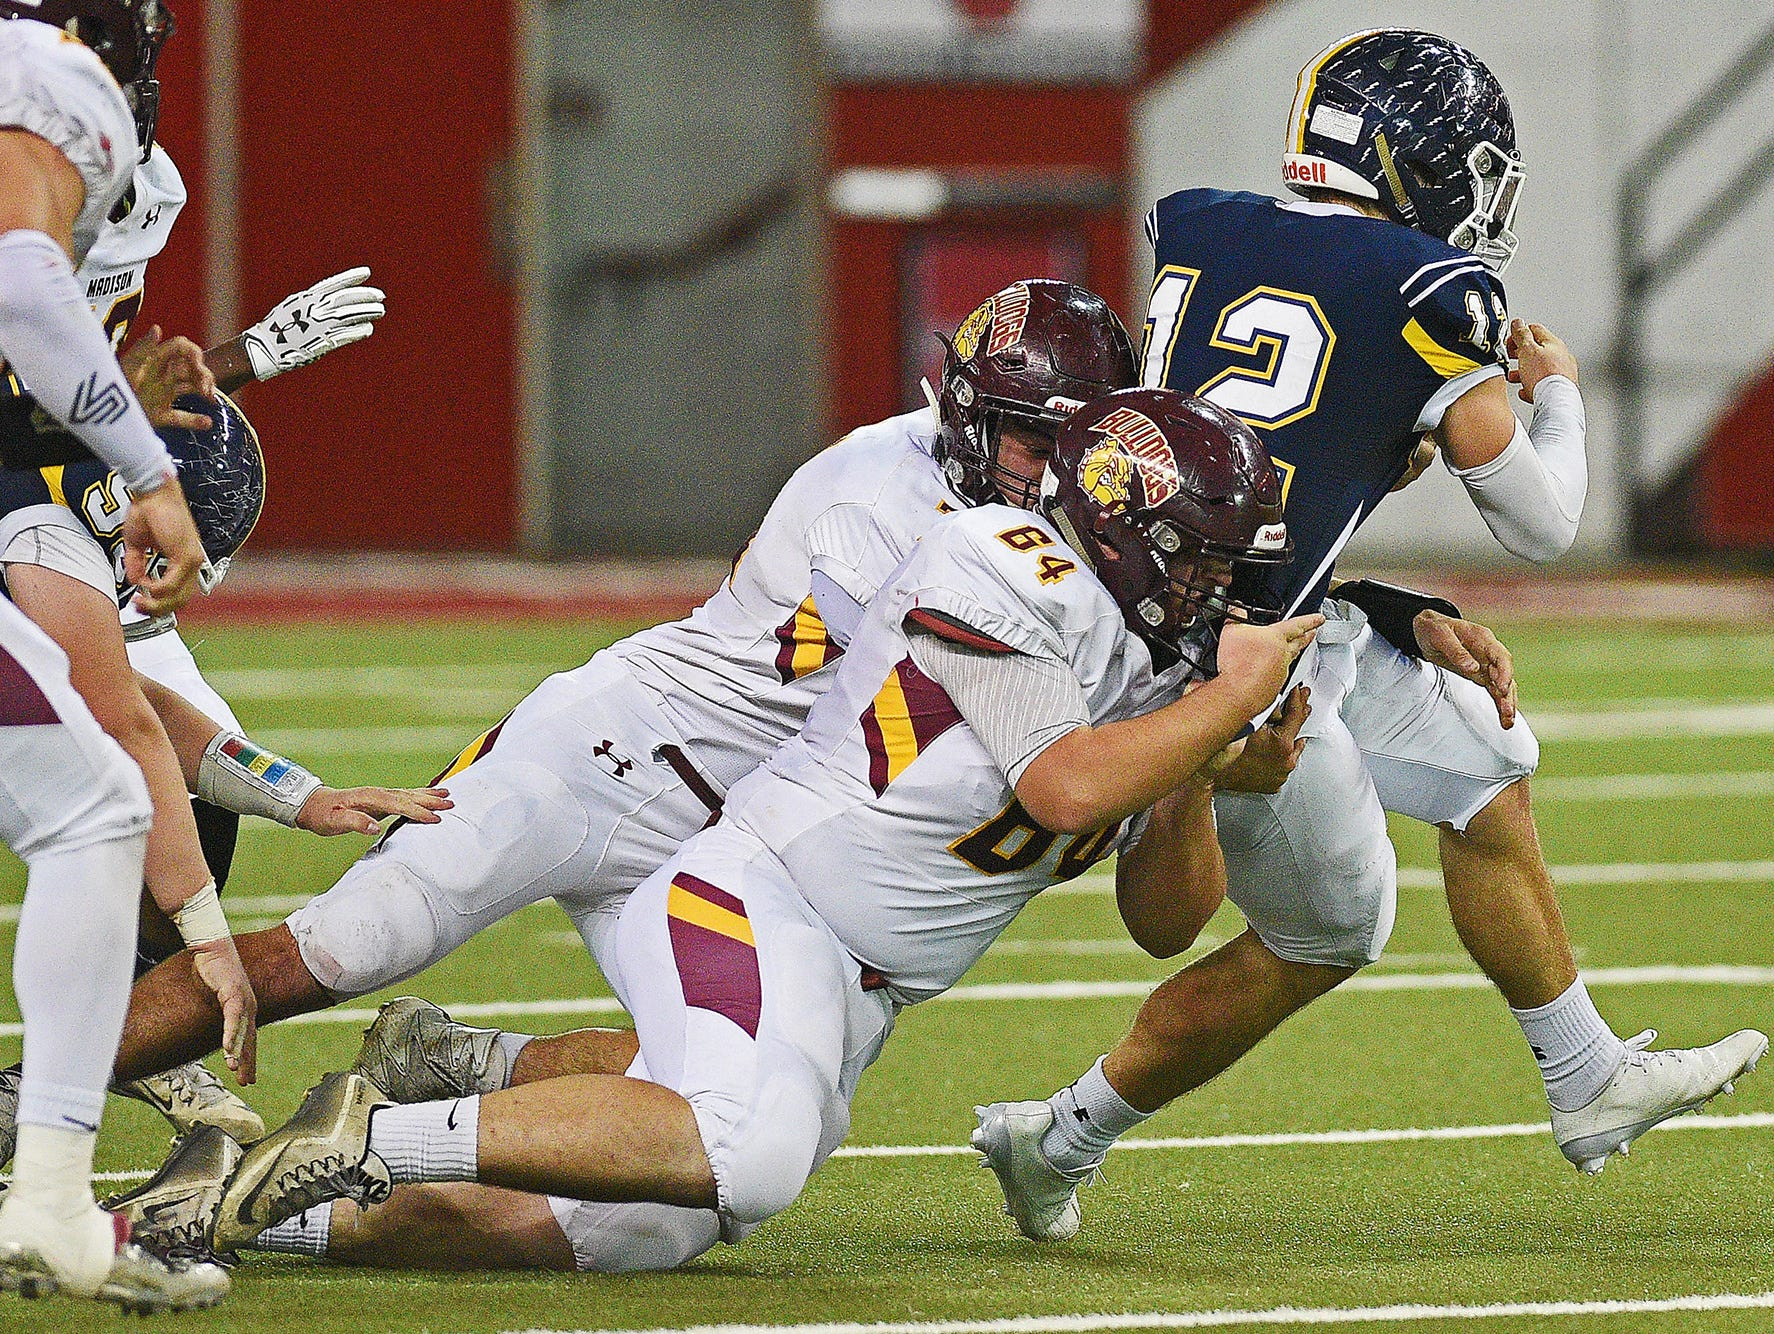 Tea Area's Payton Conrad (12) is brought down by Madison's Brad Hoff (64) and Nate Huthmiller (71) during the 2016 South Dakota State Class 11A Football Championship game Saturday, Nov. 12, 2016, at the DakotaDome on the University of South Dakota campus in Vermillion, S.D.